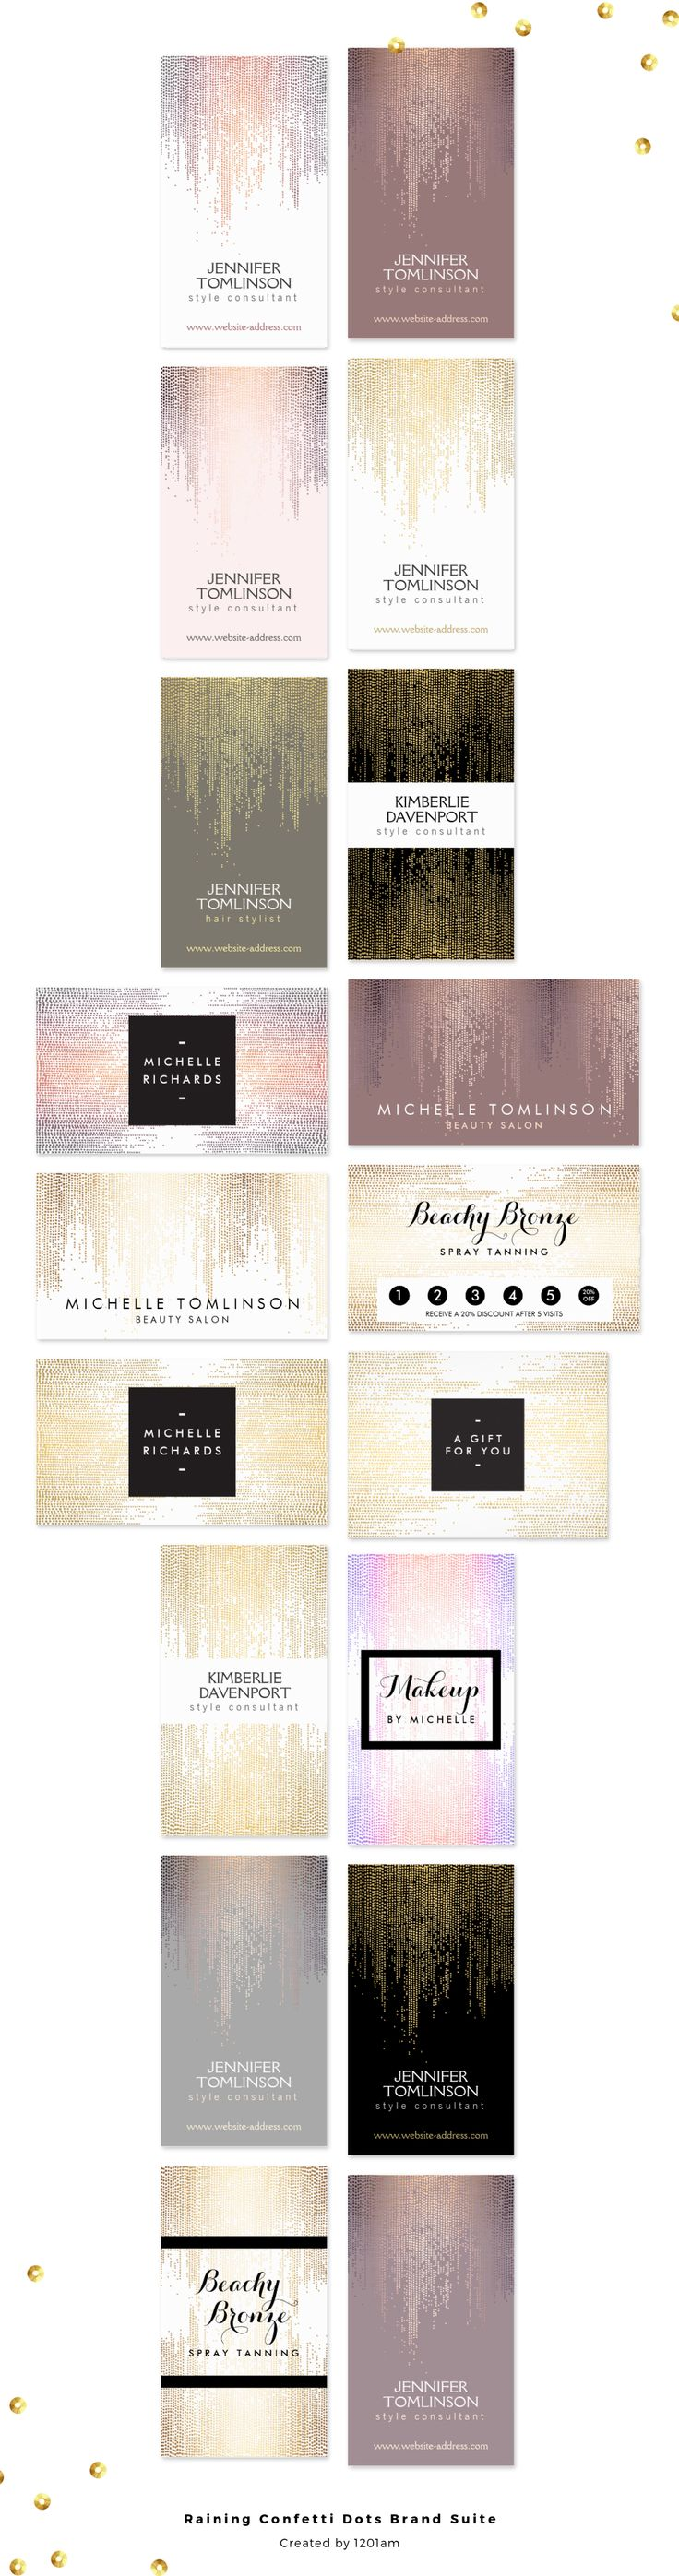 A beautiful tonal motif of cascading confetti dots creates an eye-catching pattern on this stylish suite of brand materials designed by 1201AM. Perfect for stylists, beauty professionals, makeup artists, event planners, interior designers, artists and more. Available to personalize on business cards and office stationery in several unique color variations. ♥ Pinnable image courtesy @ohsoprettypaper